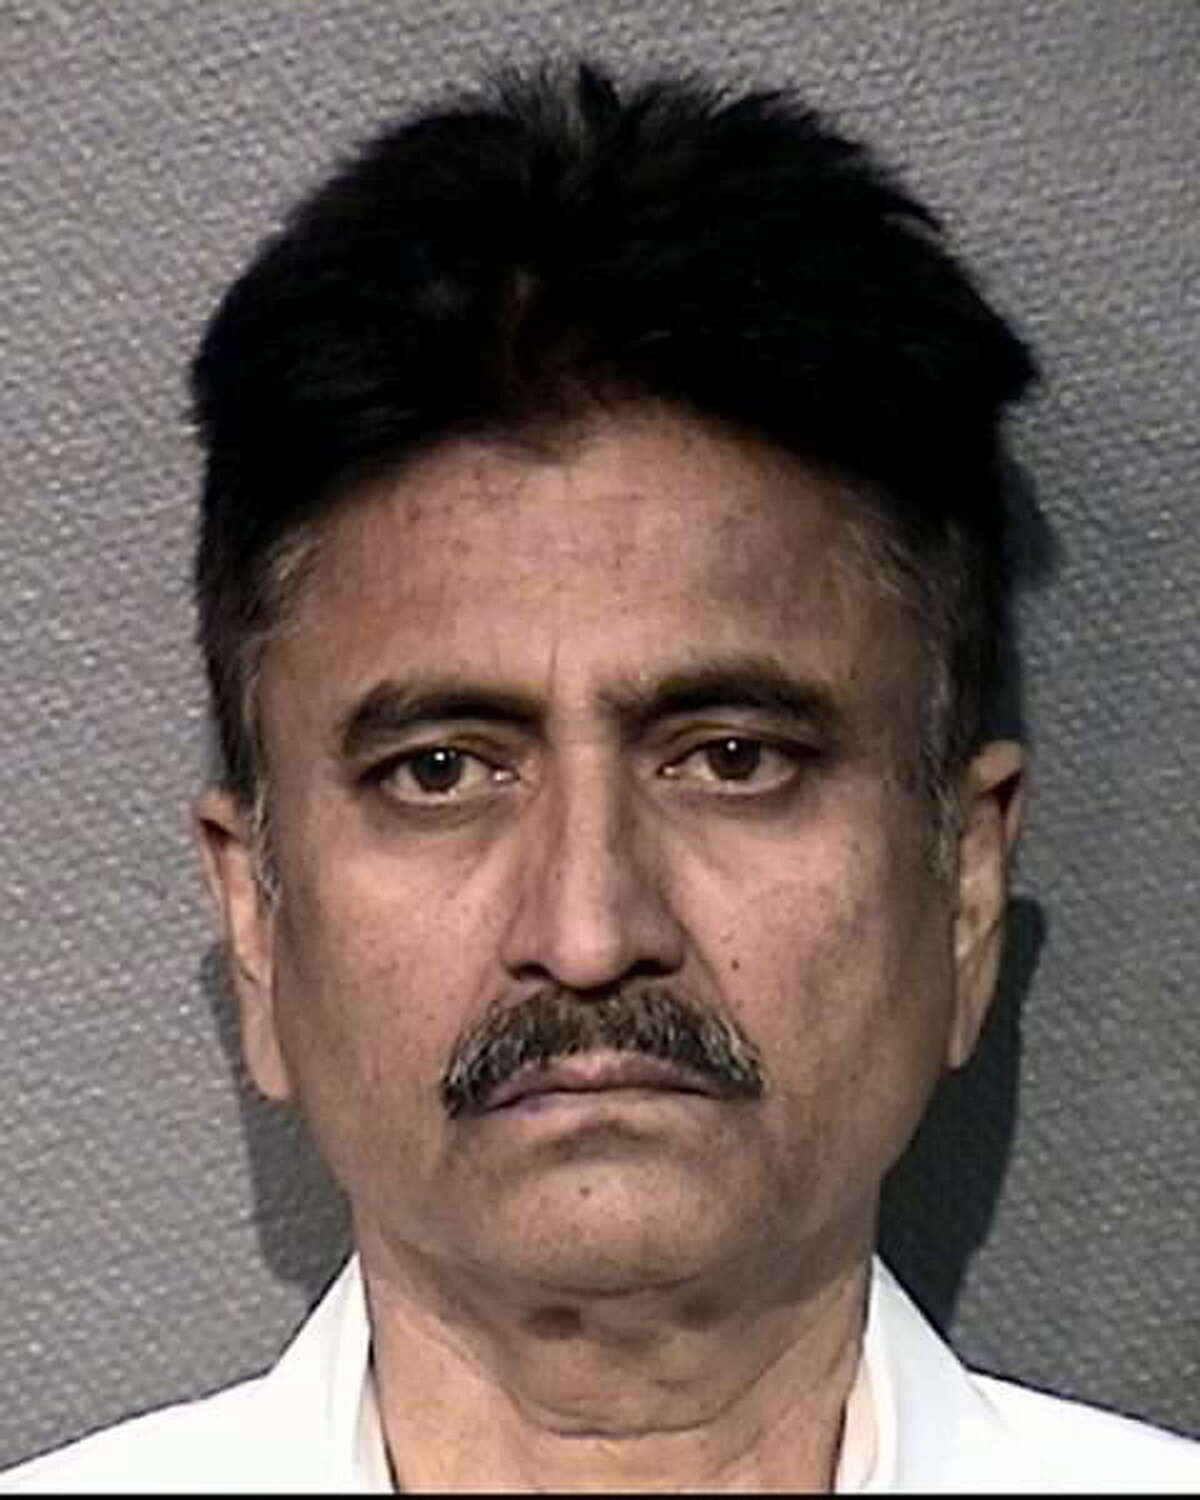 HPD Senior Officer Muzaffar Siddiqi, 56, has been charged with DWI after an incident on Monday, Dec. 17, 2018, police said.